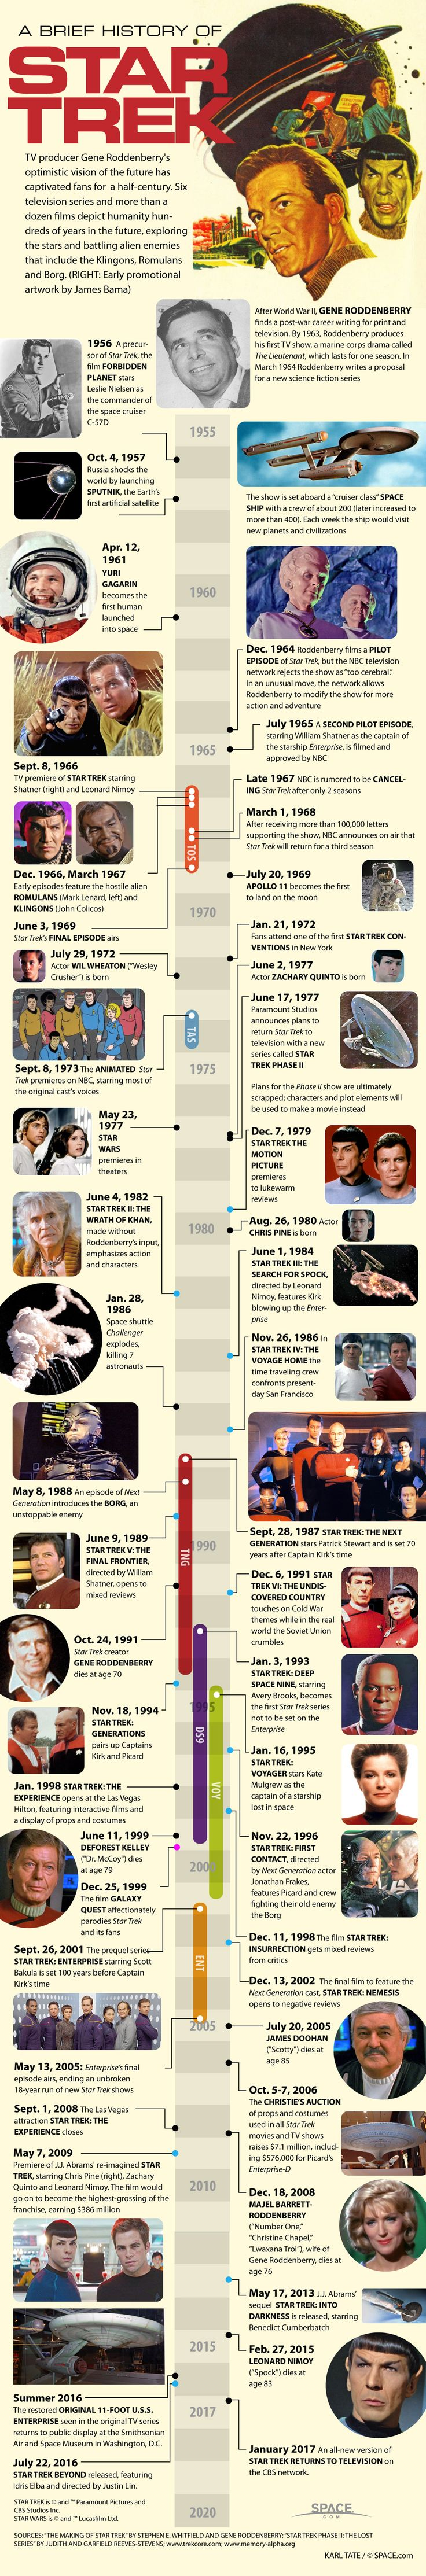 The Evolution of 'Star Trek'(Infographic) | Star Trek TV Series & Films | NASA & Star Trek, Science Fiction TV & Films